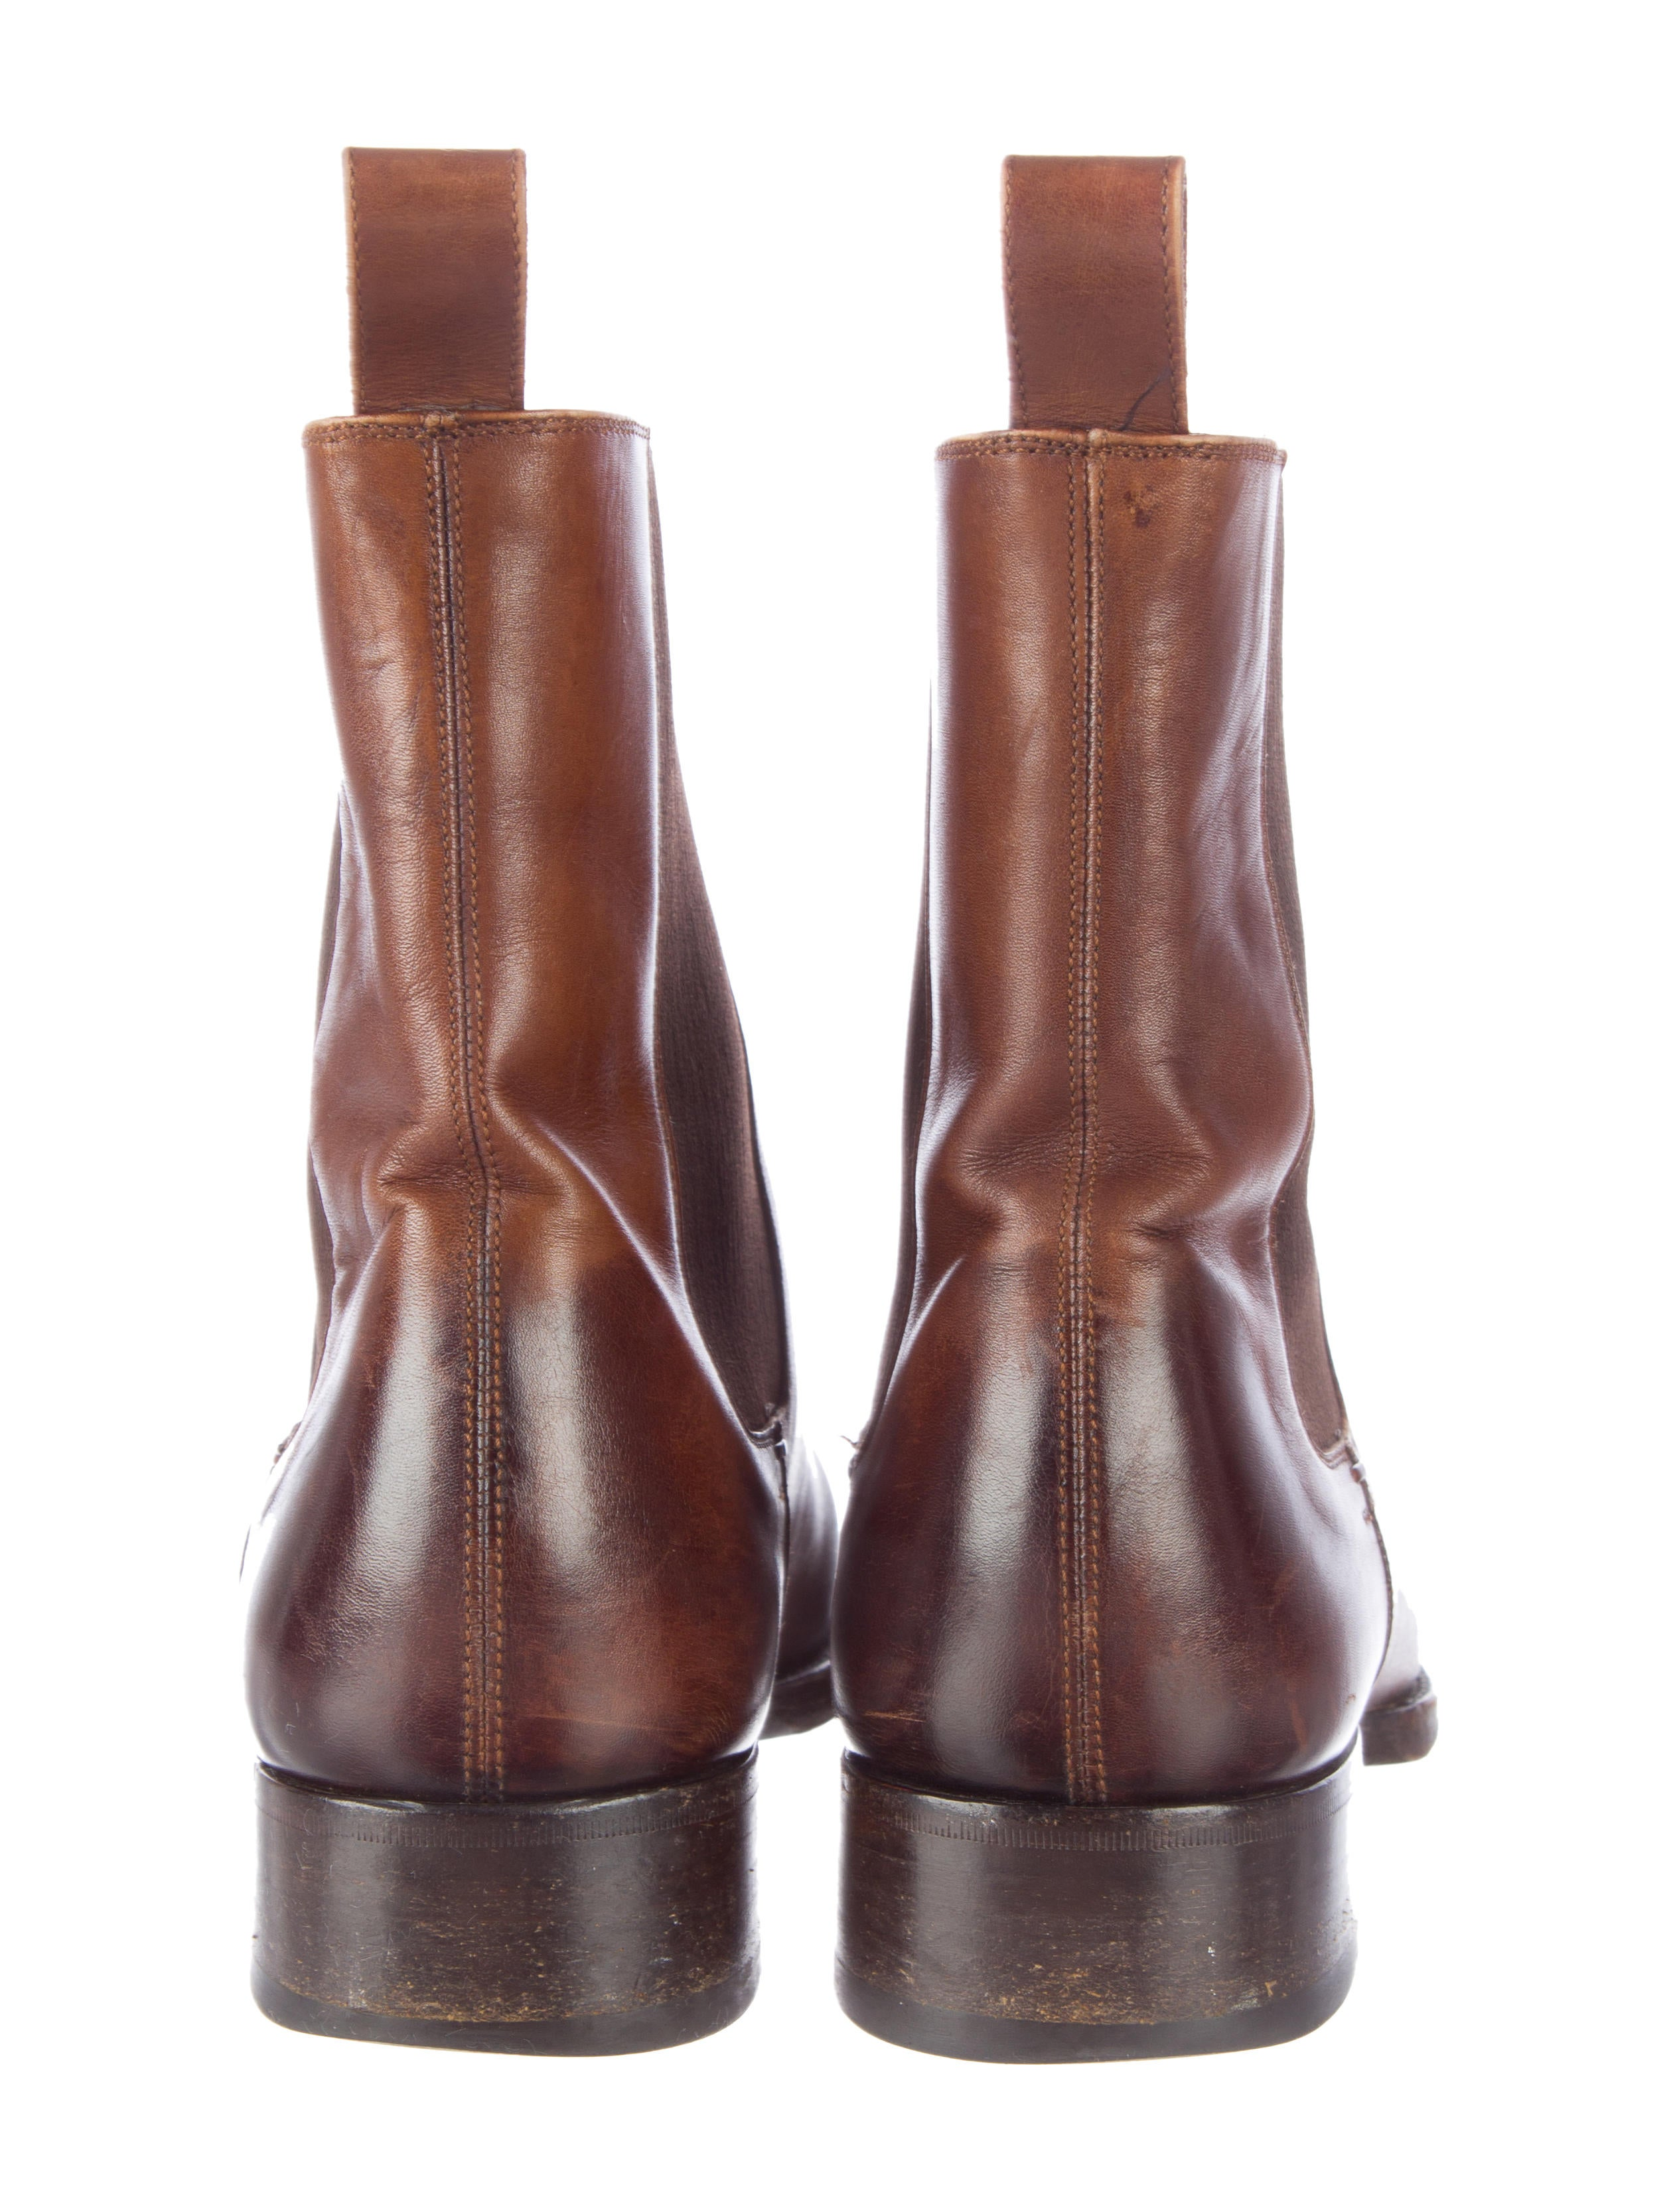 Tom Ford Gianni Chelsea Boots - Shoes - TOM24255   The ...